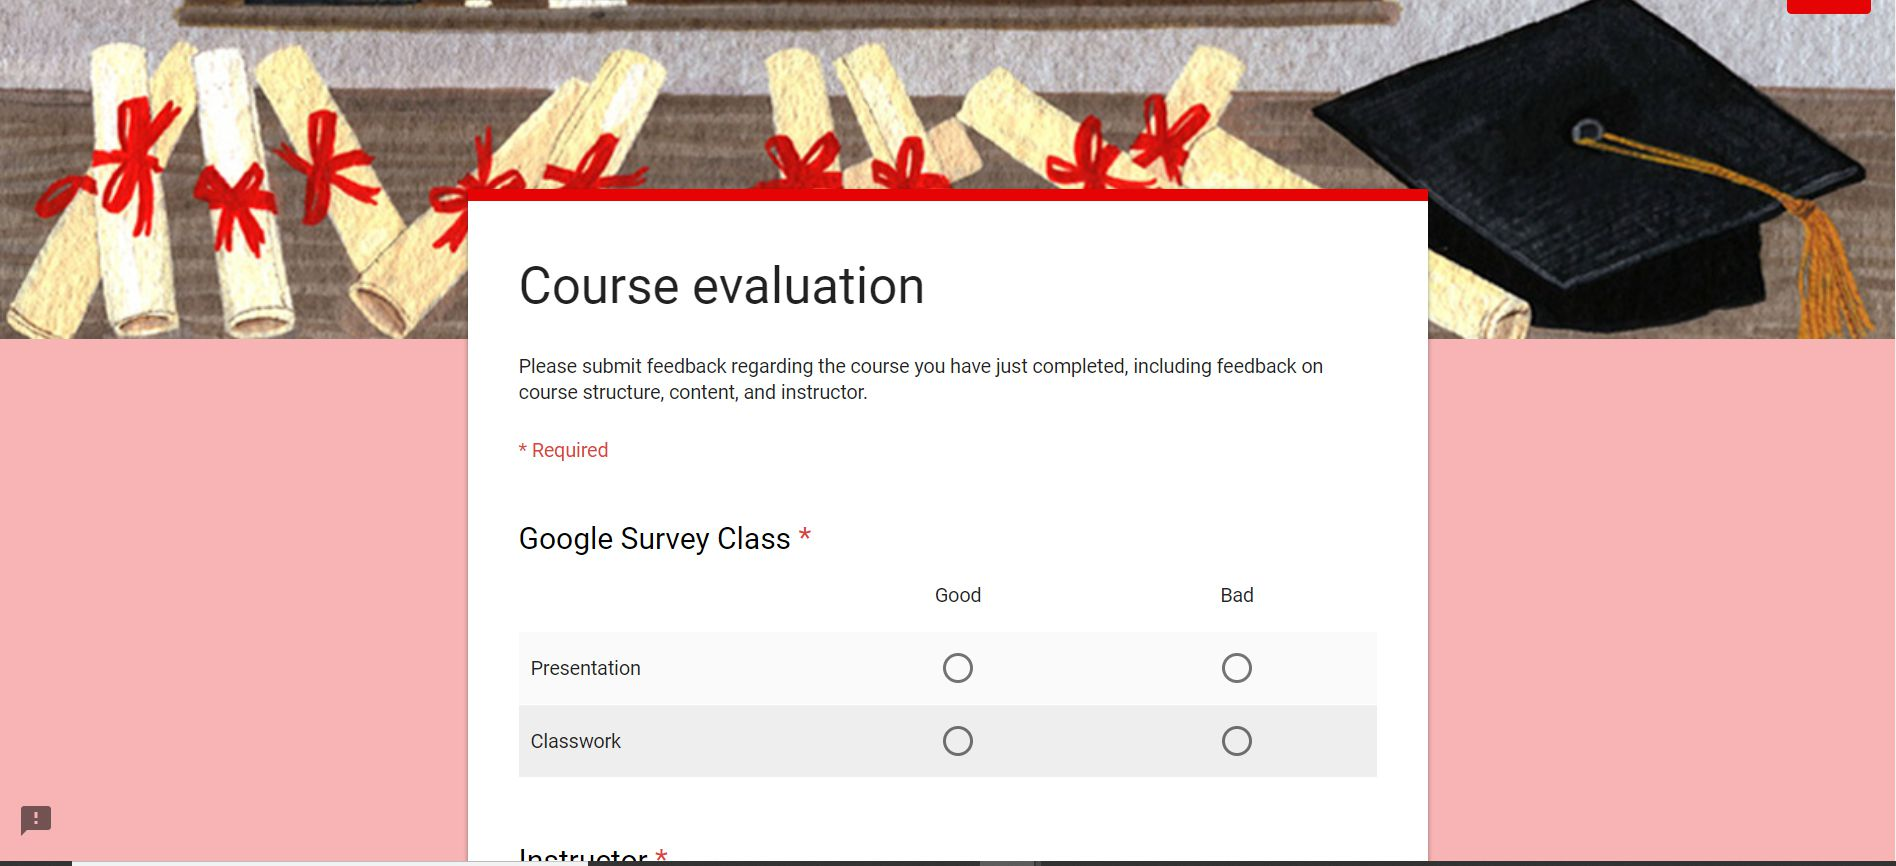 Google Forms Templates from www.lifewire.com